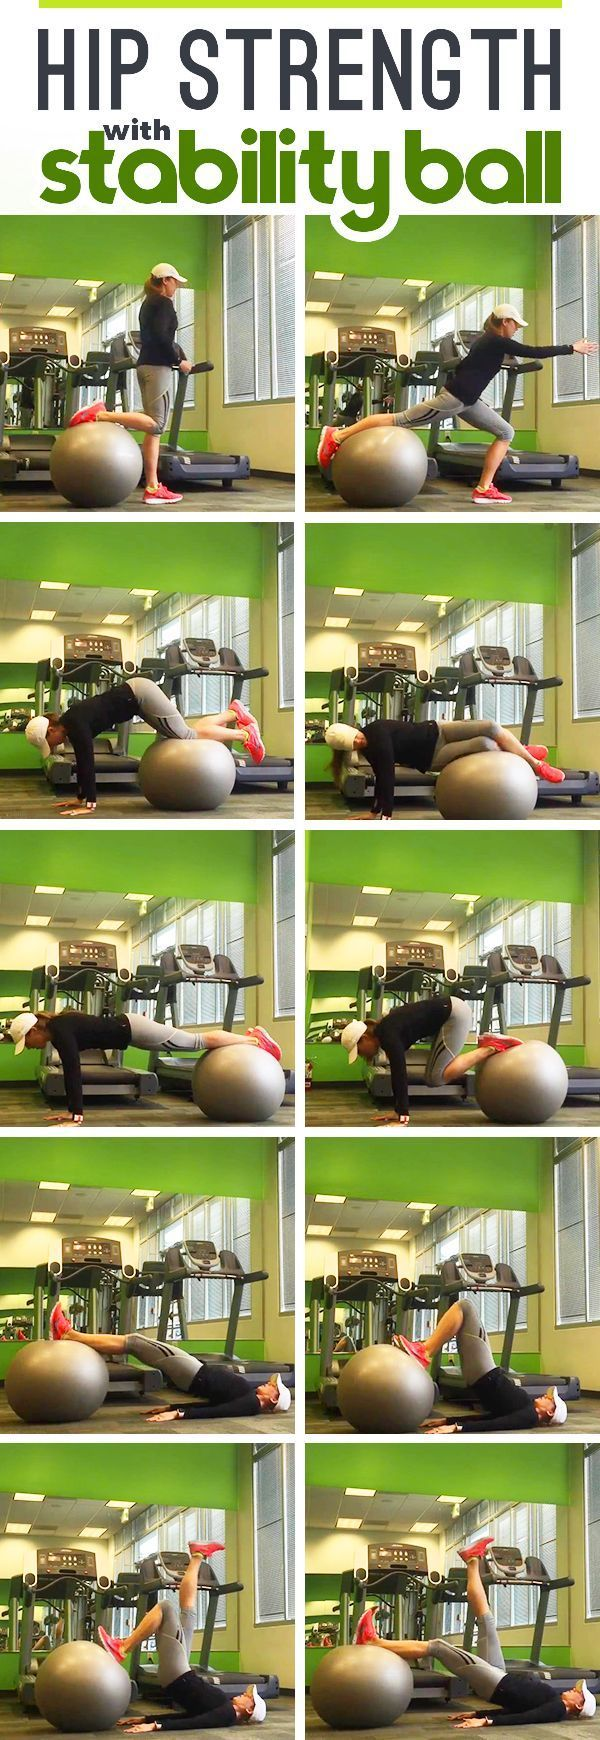 Improve Hip Strength with Stability Ball exercises to prevent IT Band Syndrome and runner's knee, especially important for women